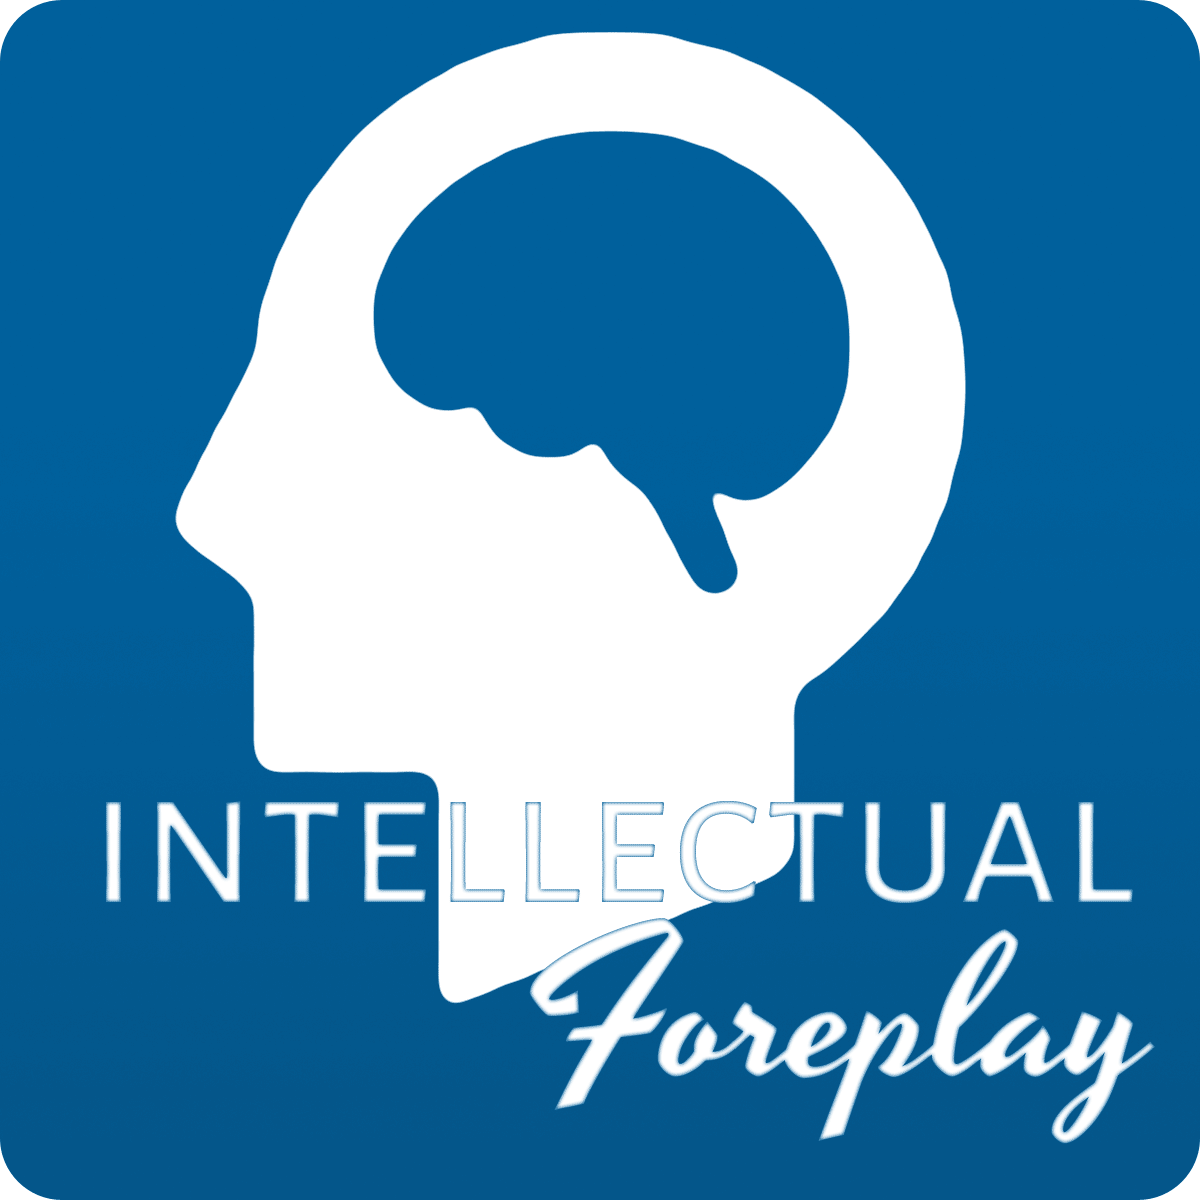 intellectual-foreplay